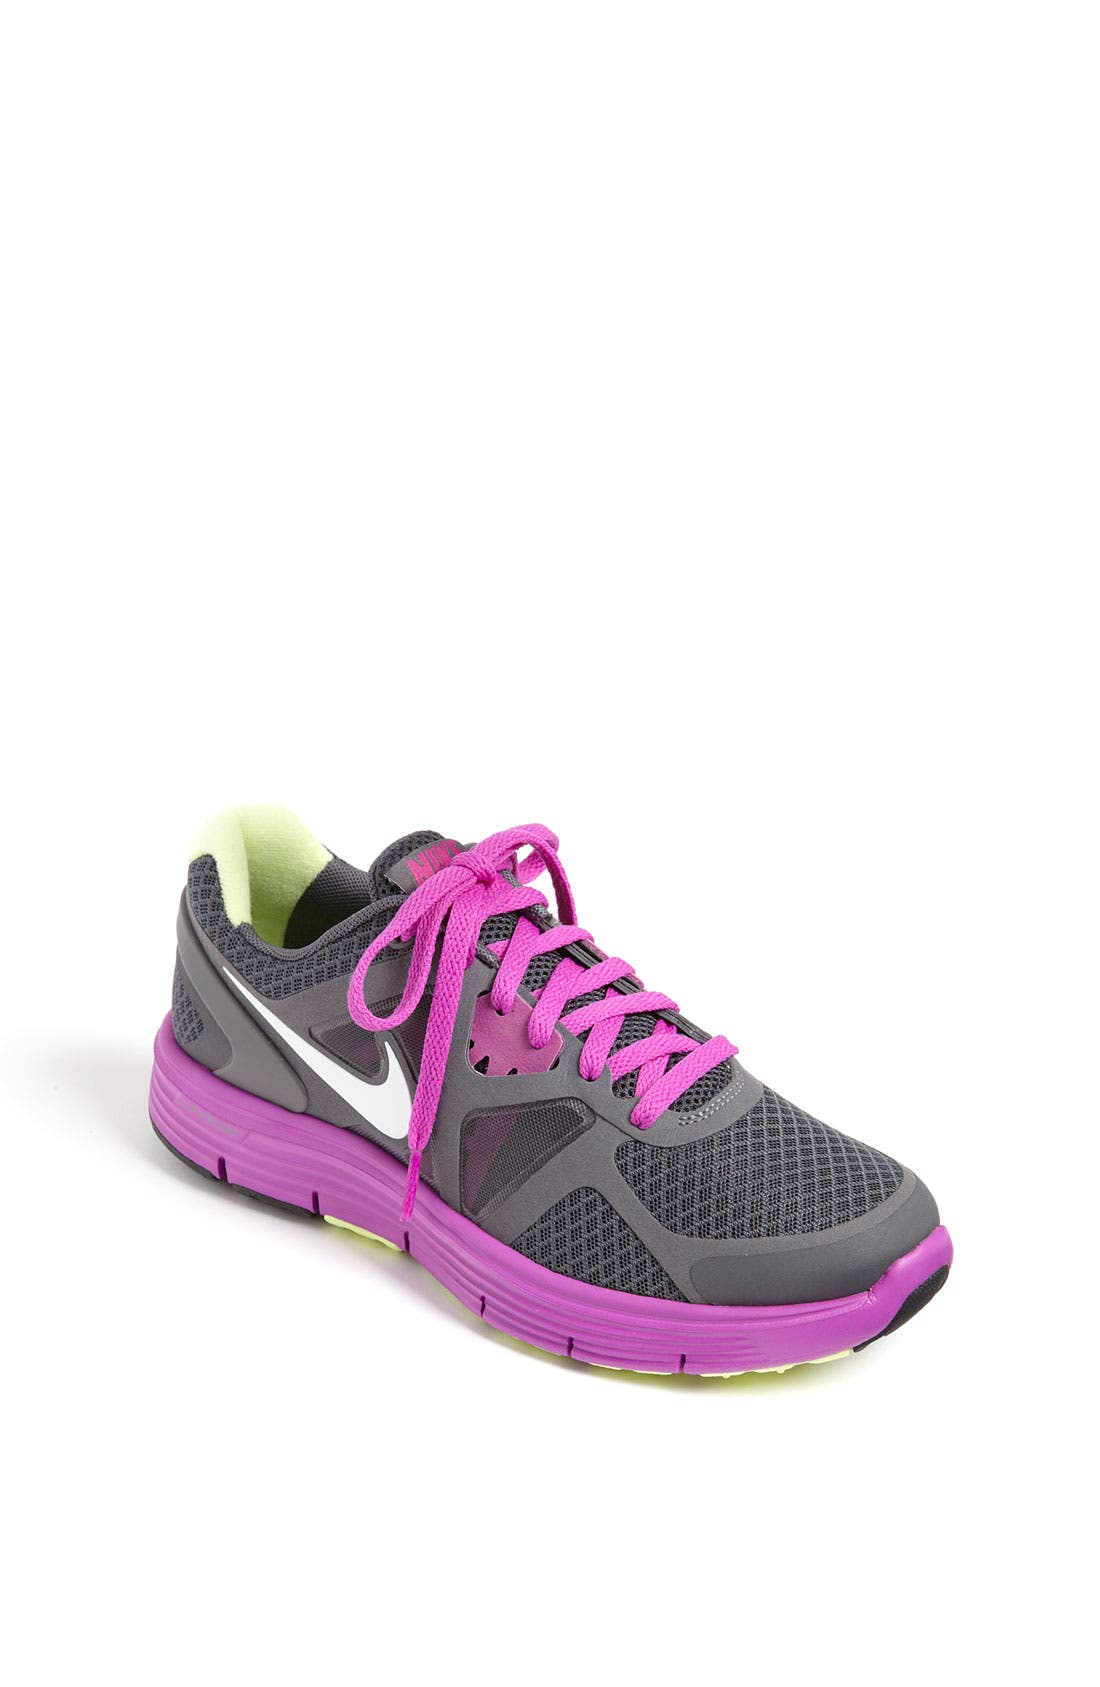 Alternate Image 1 Selected - Nike 'LunarGlide 3' Running Shoe (Toddler, Little Kid & Big Kid)